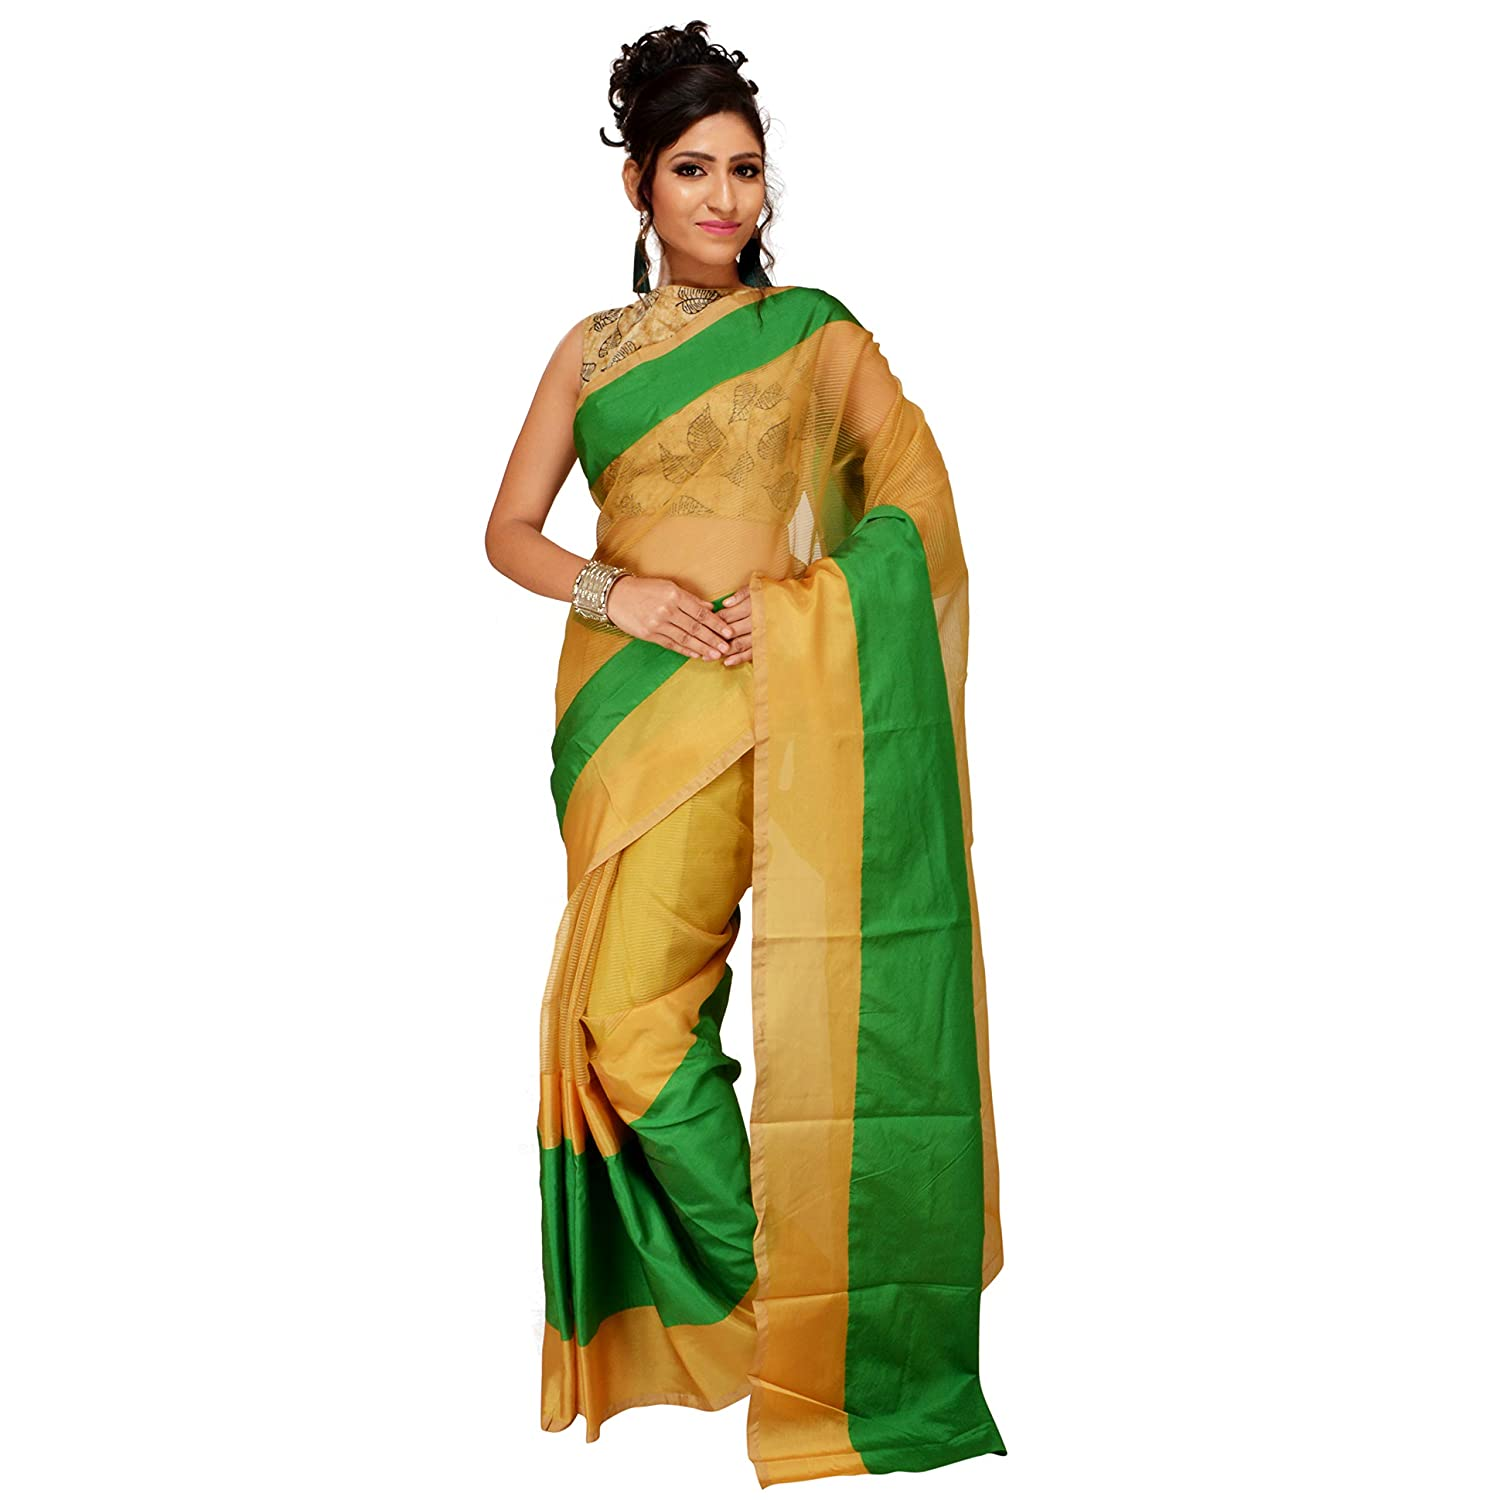 383e607160a Sarika Women s Solid Striped Daily Wear Silk Saree with Blouse Piece  (Beige